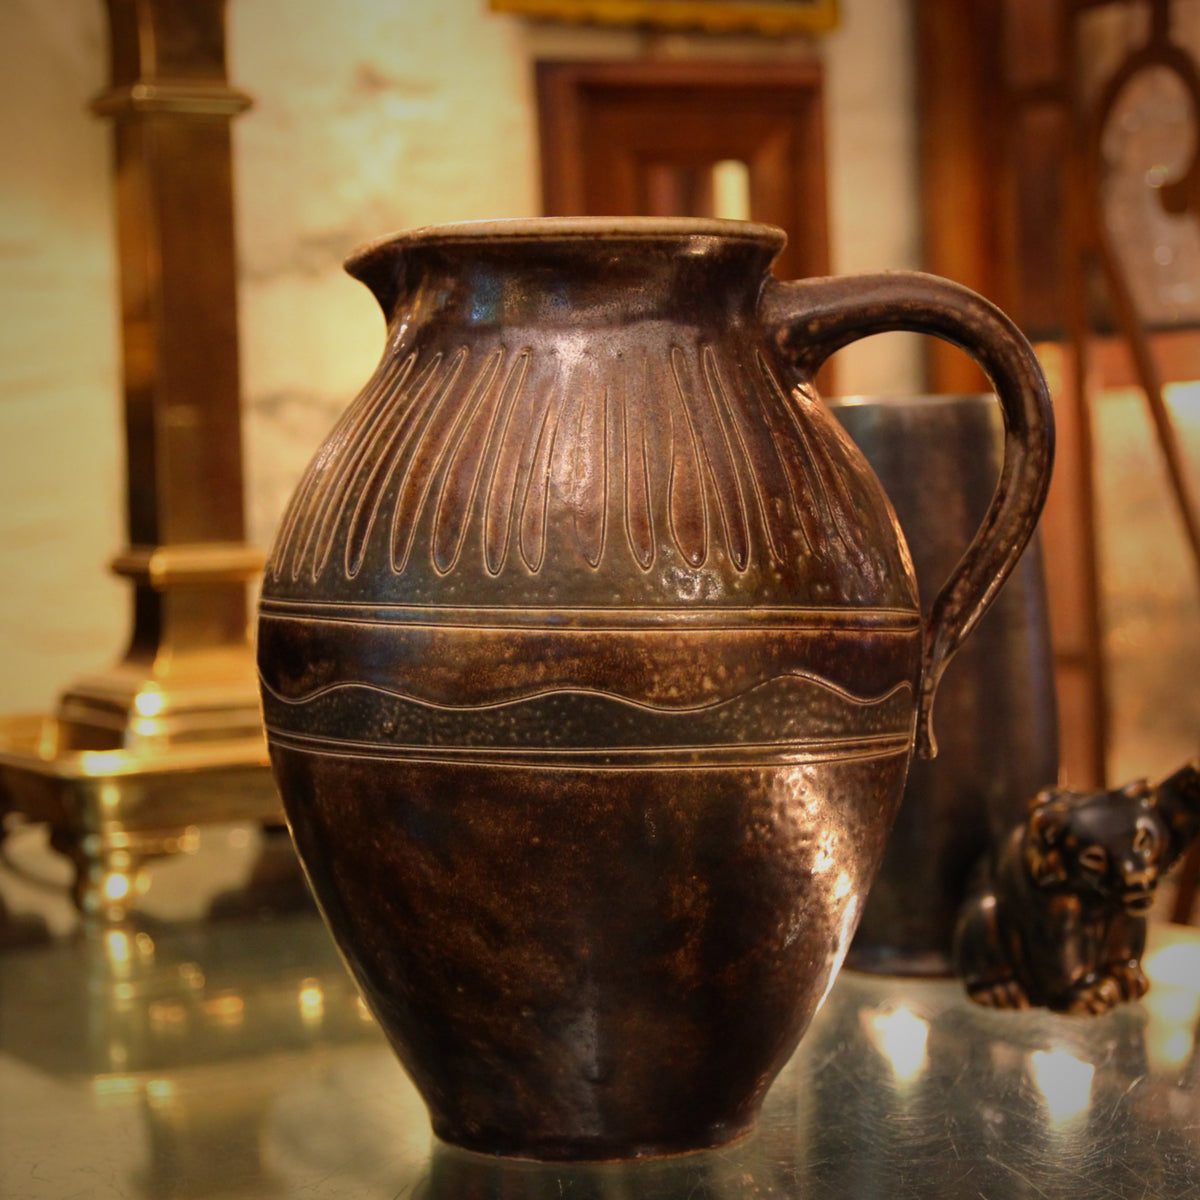 Balzar-Kopp Incised Pitcher